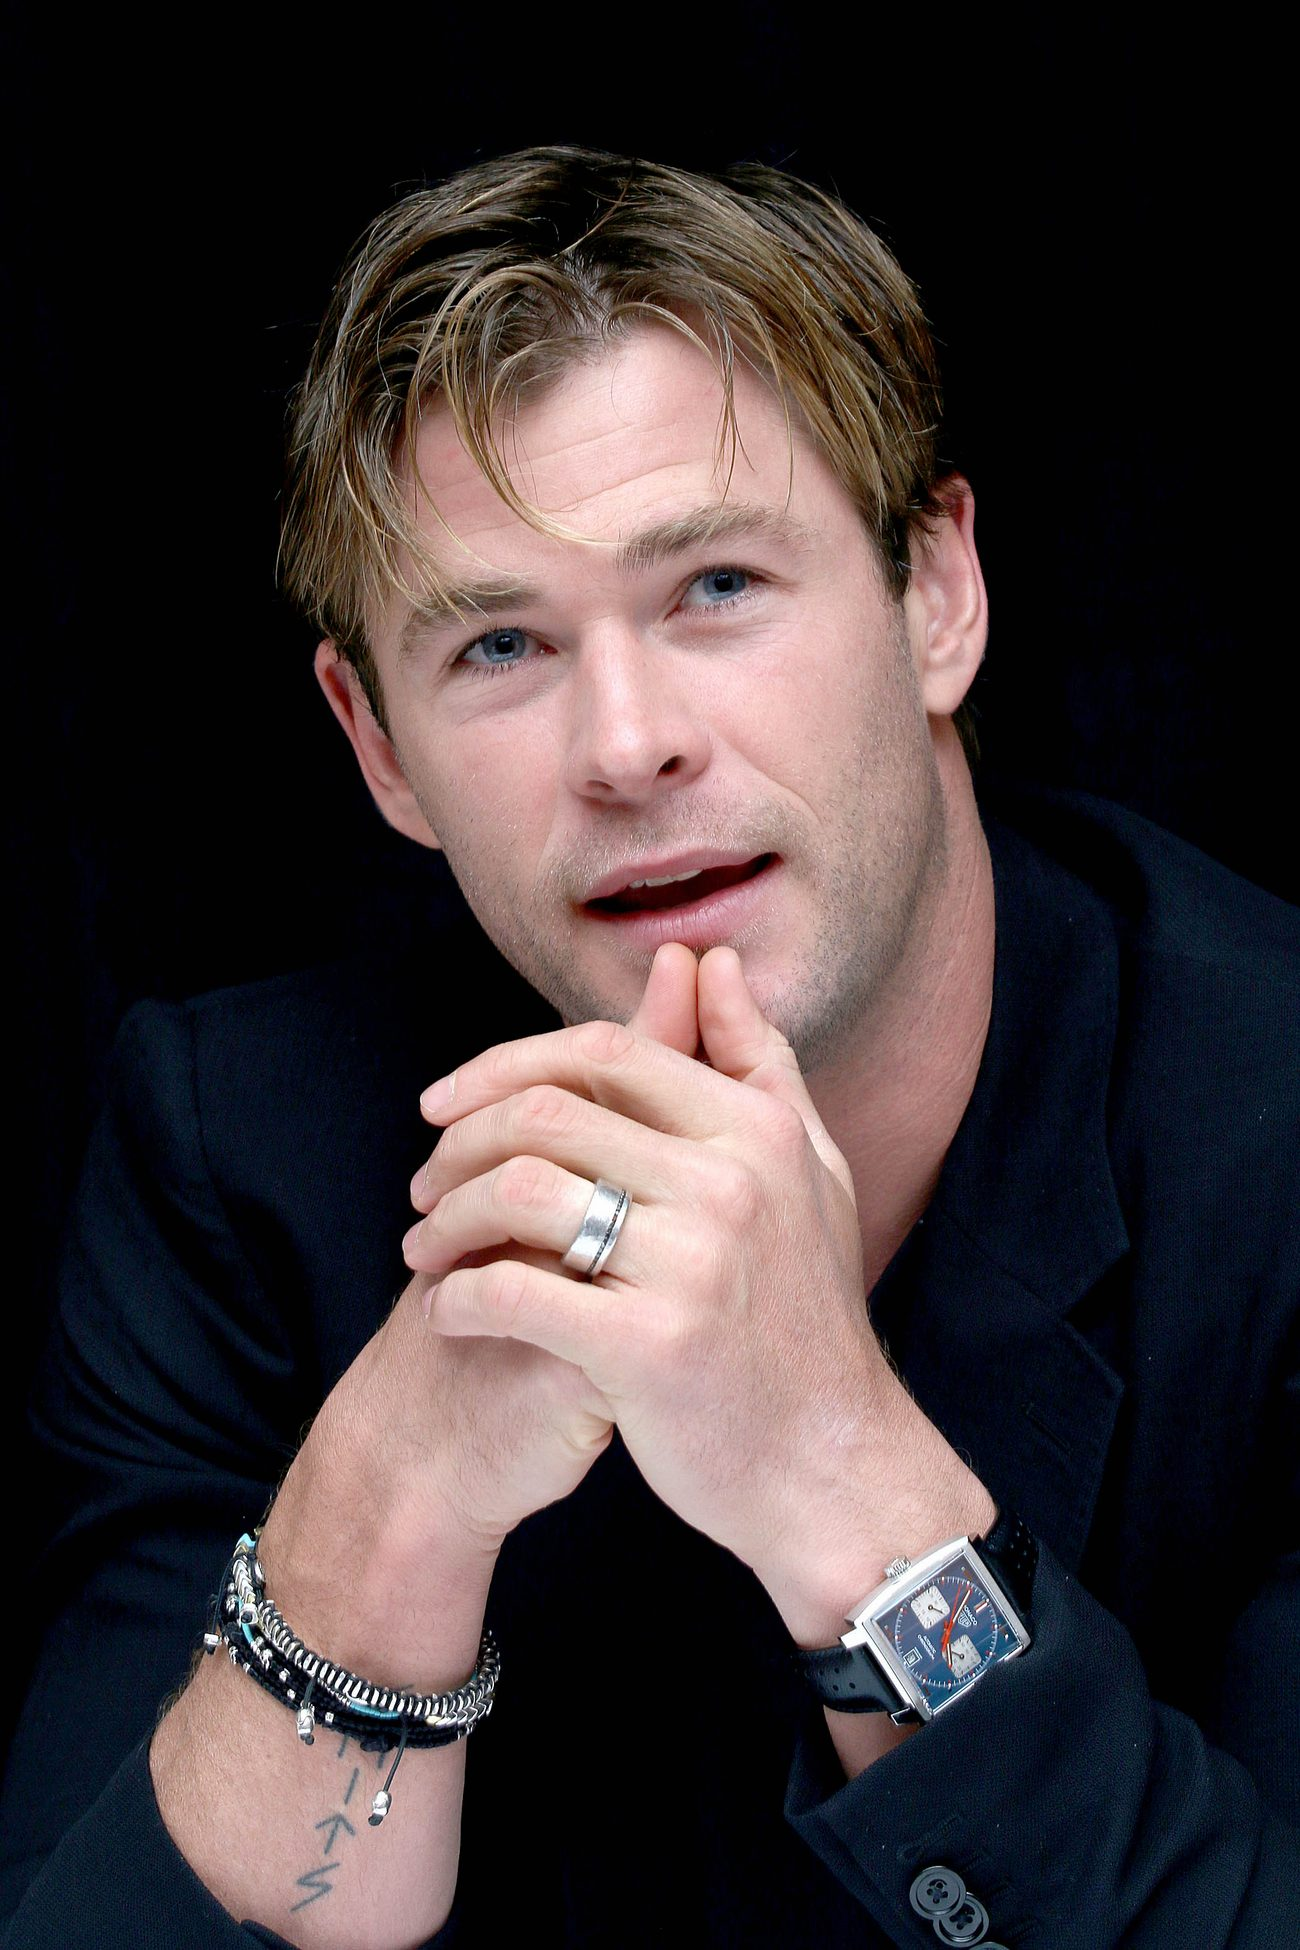 Chris Hemsworth at Ine Heart ofe Sea Press Conference-1